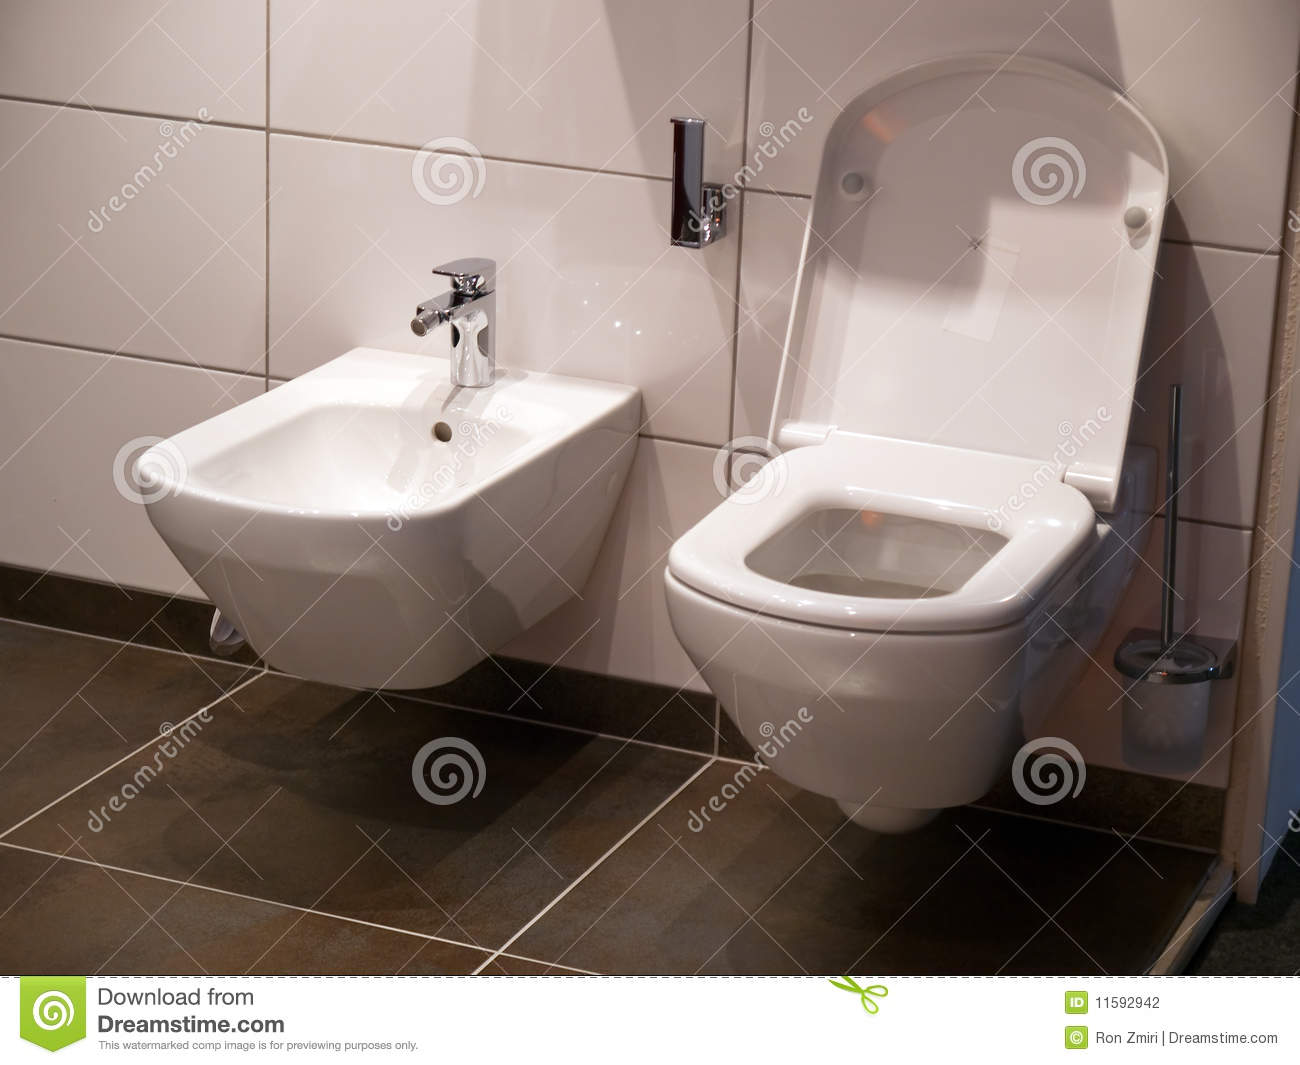 modern bathroom toilet seat stock photography  image  - bathroom seat toilet